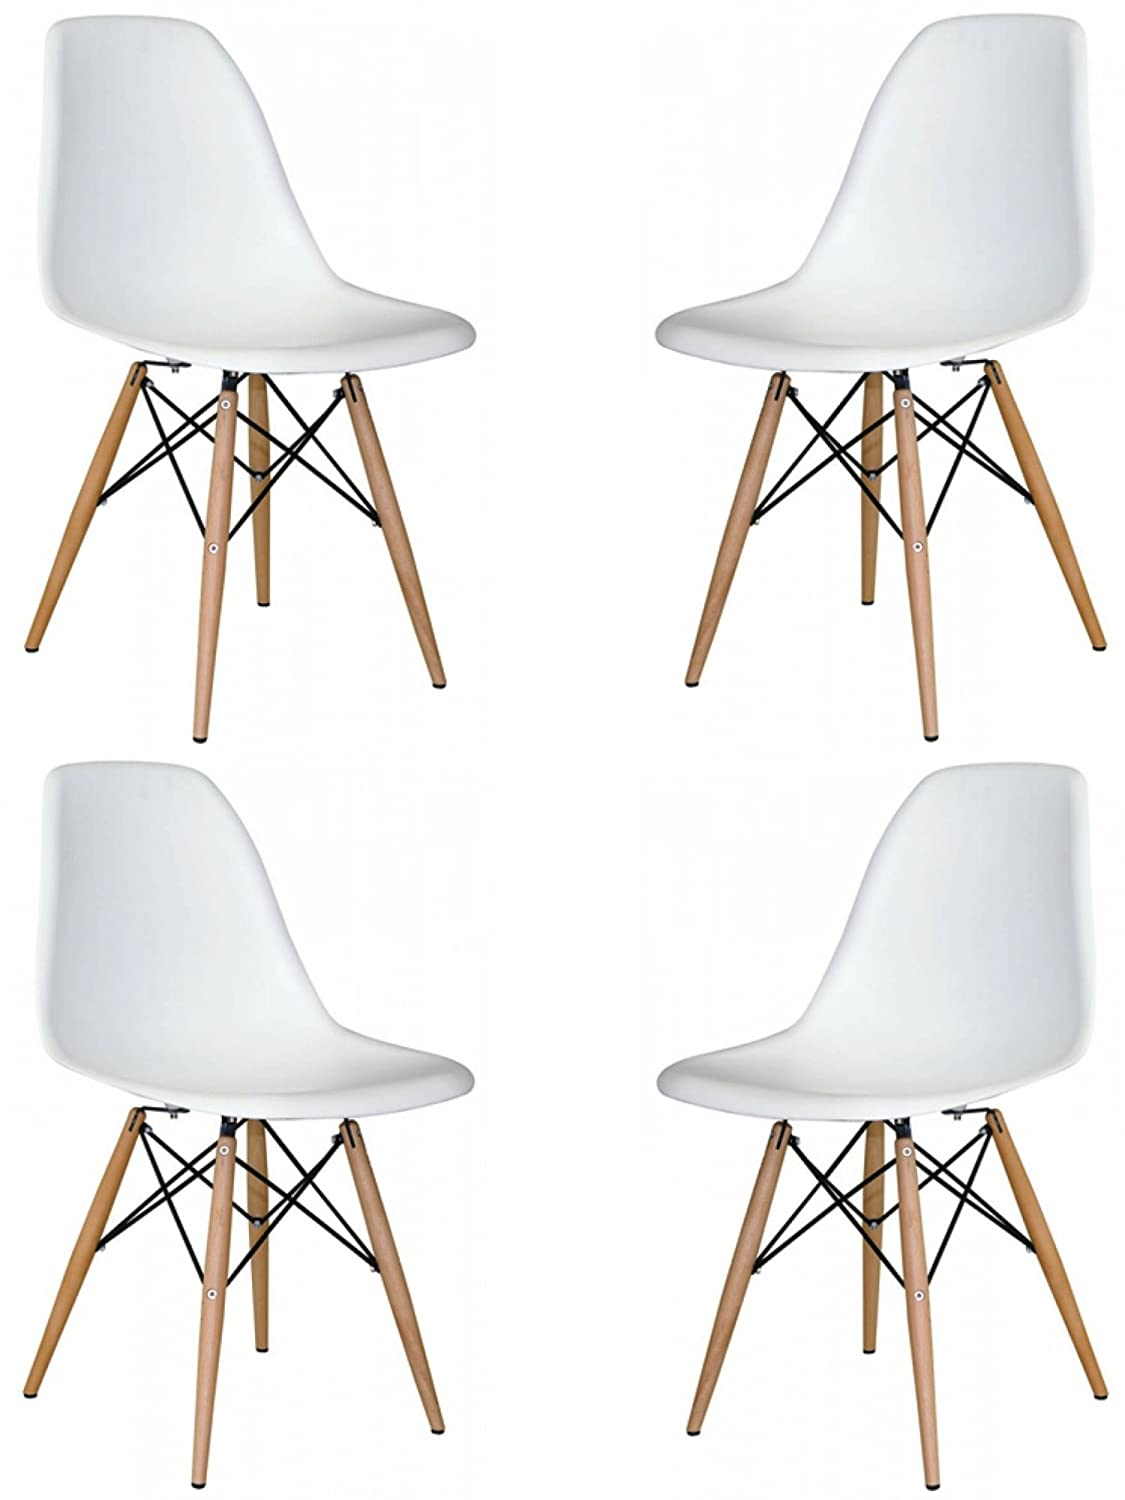 Amazon.com - Mid Century Modern Eames Style Chairs 4 Pack (White ...